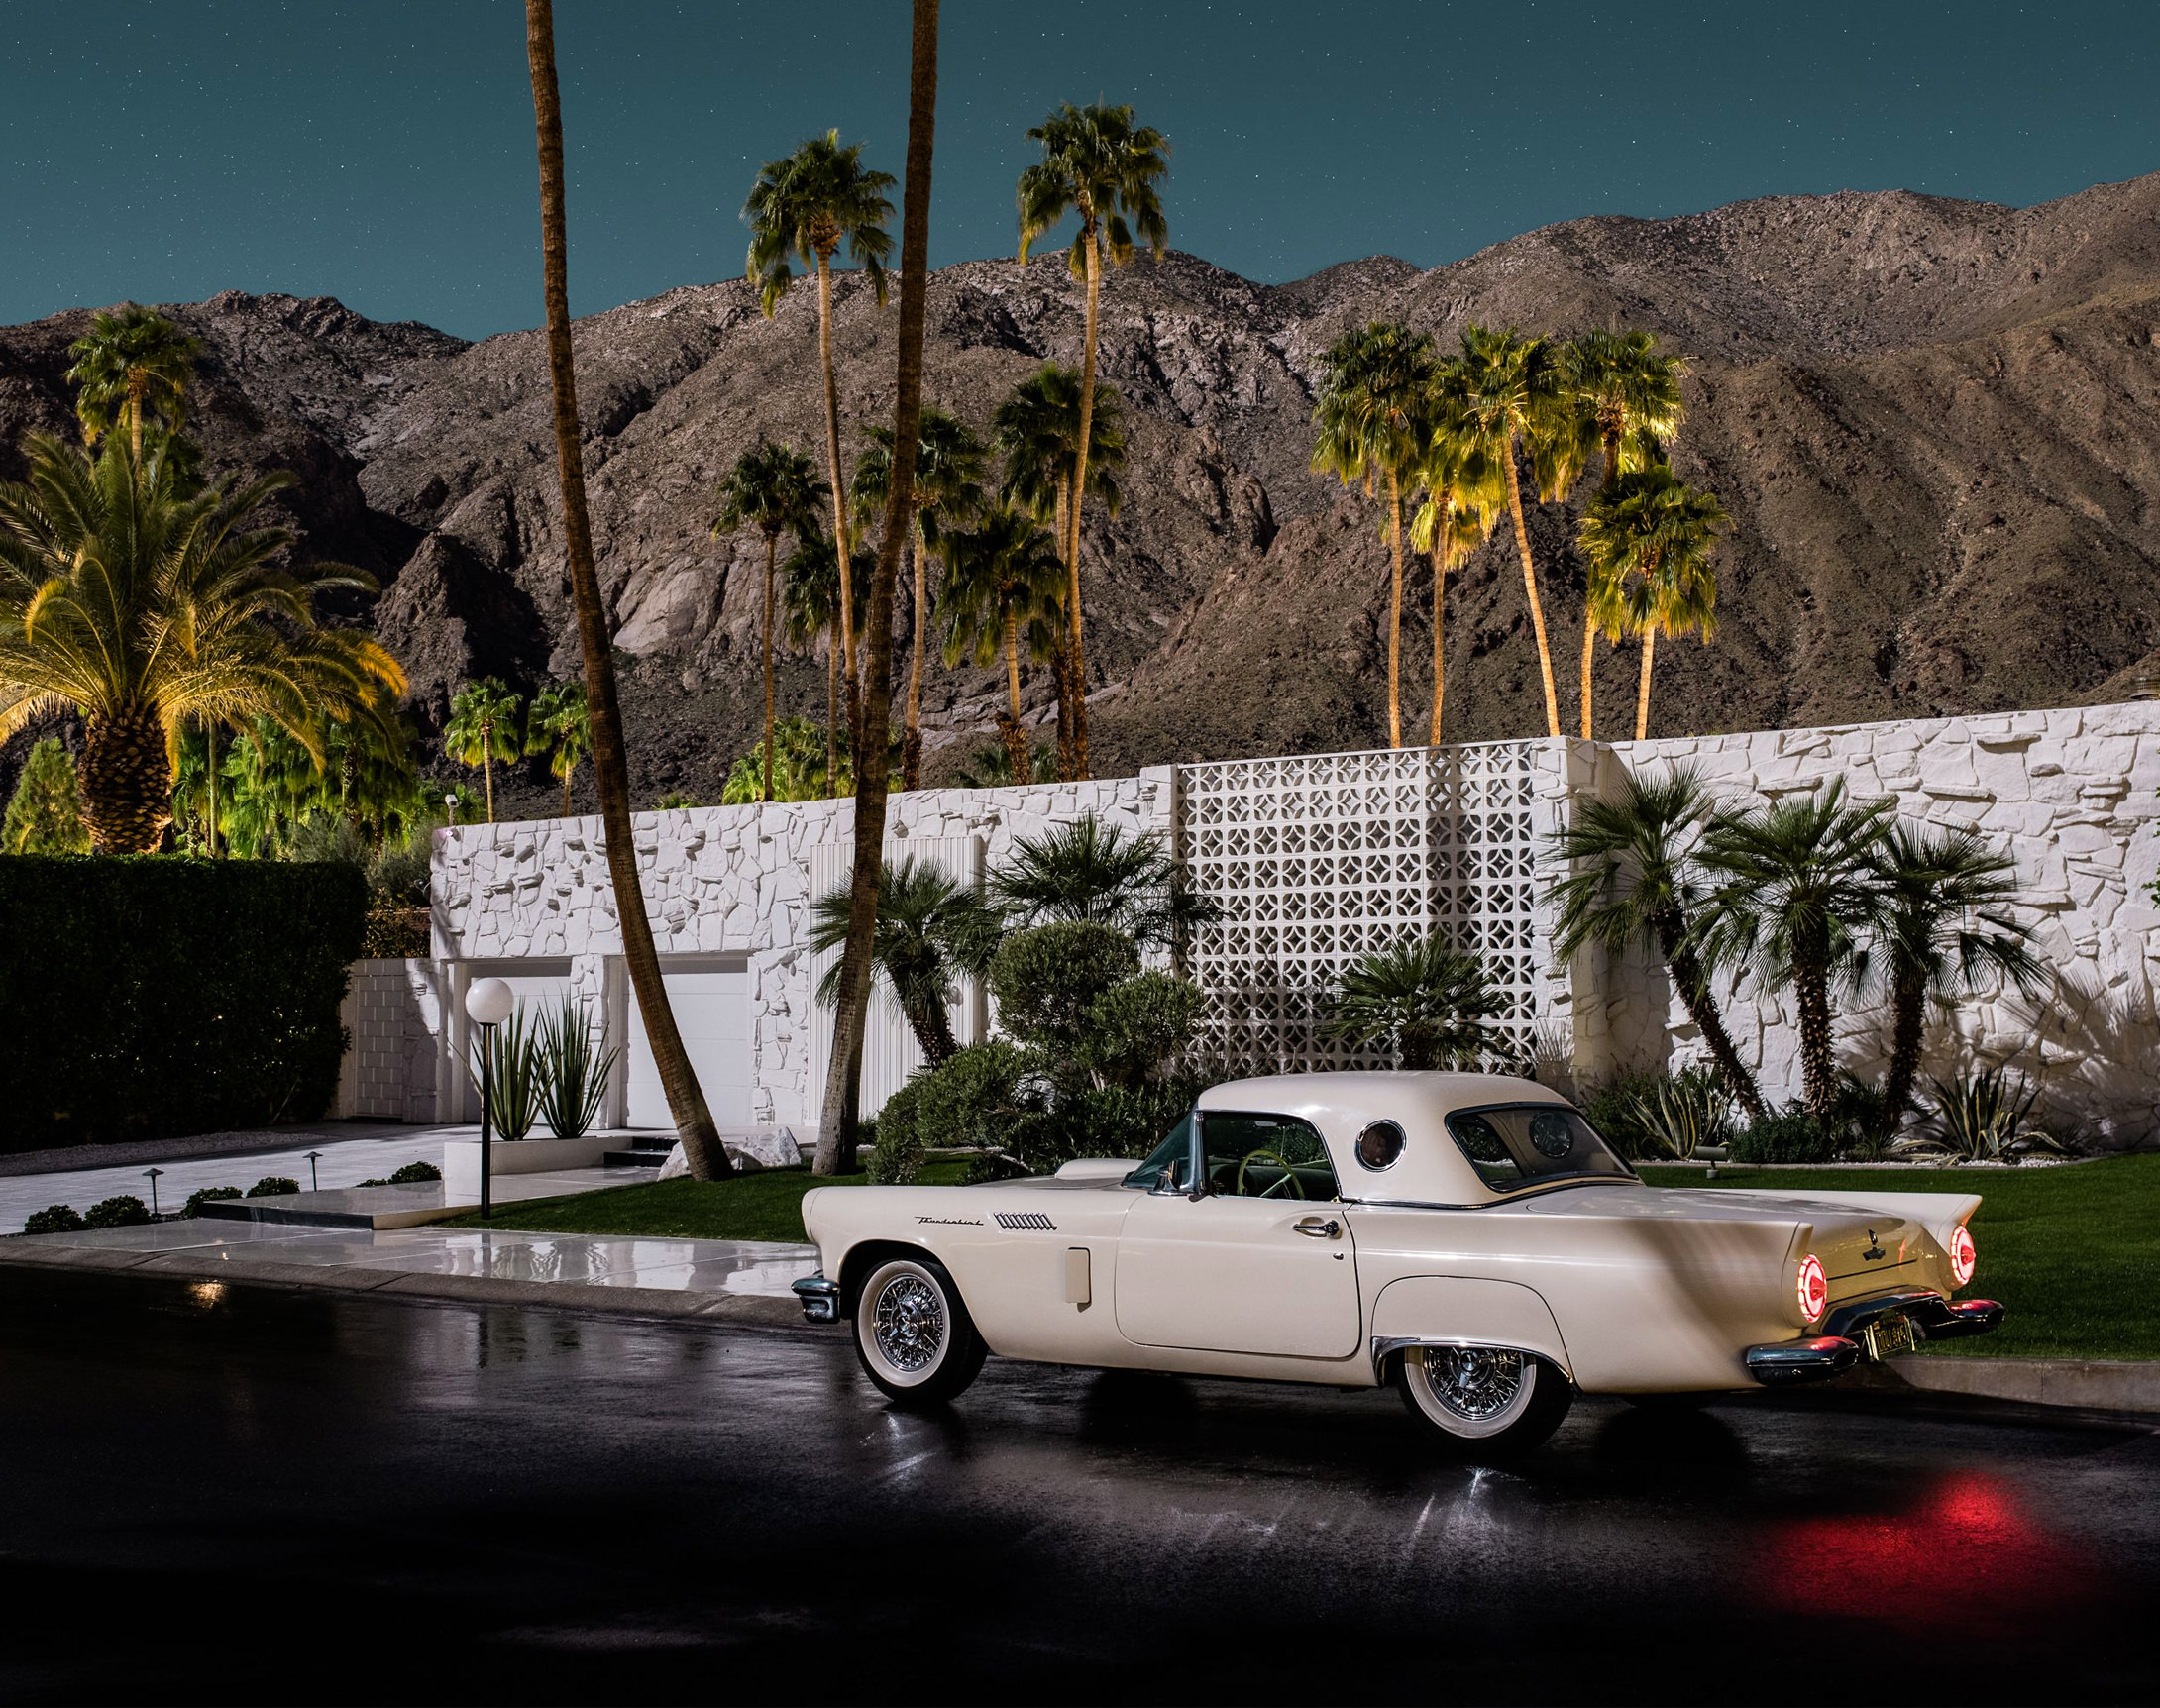 Midnight Modern Tom Blachford Série Photographique